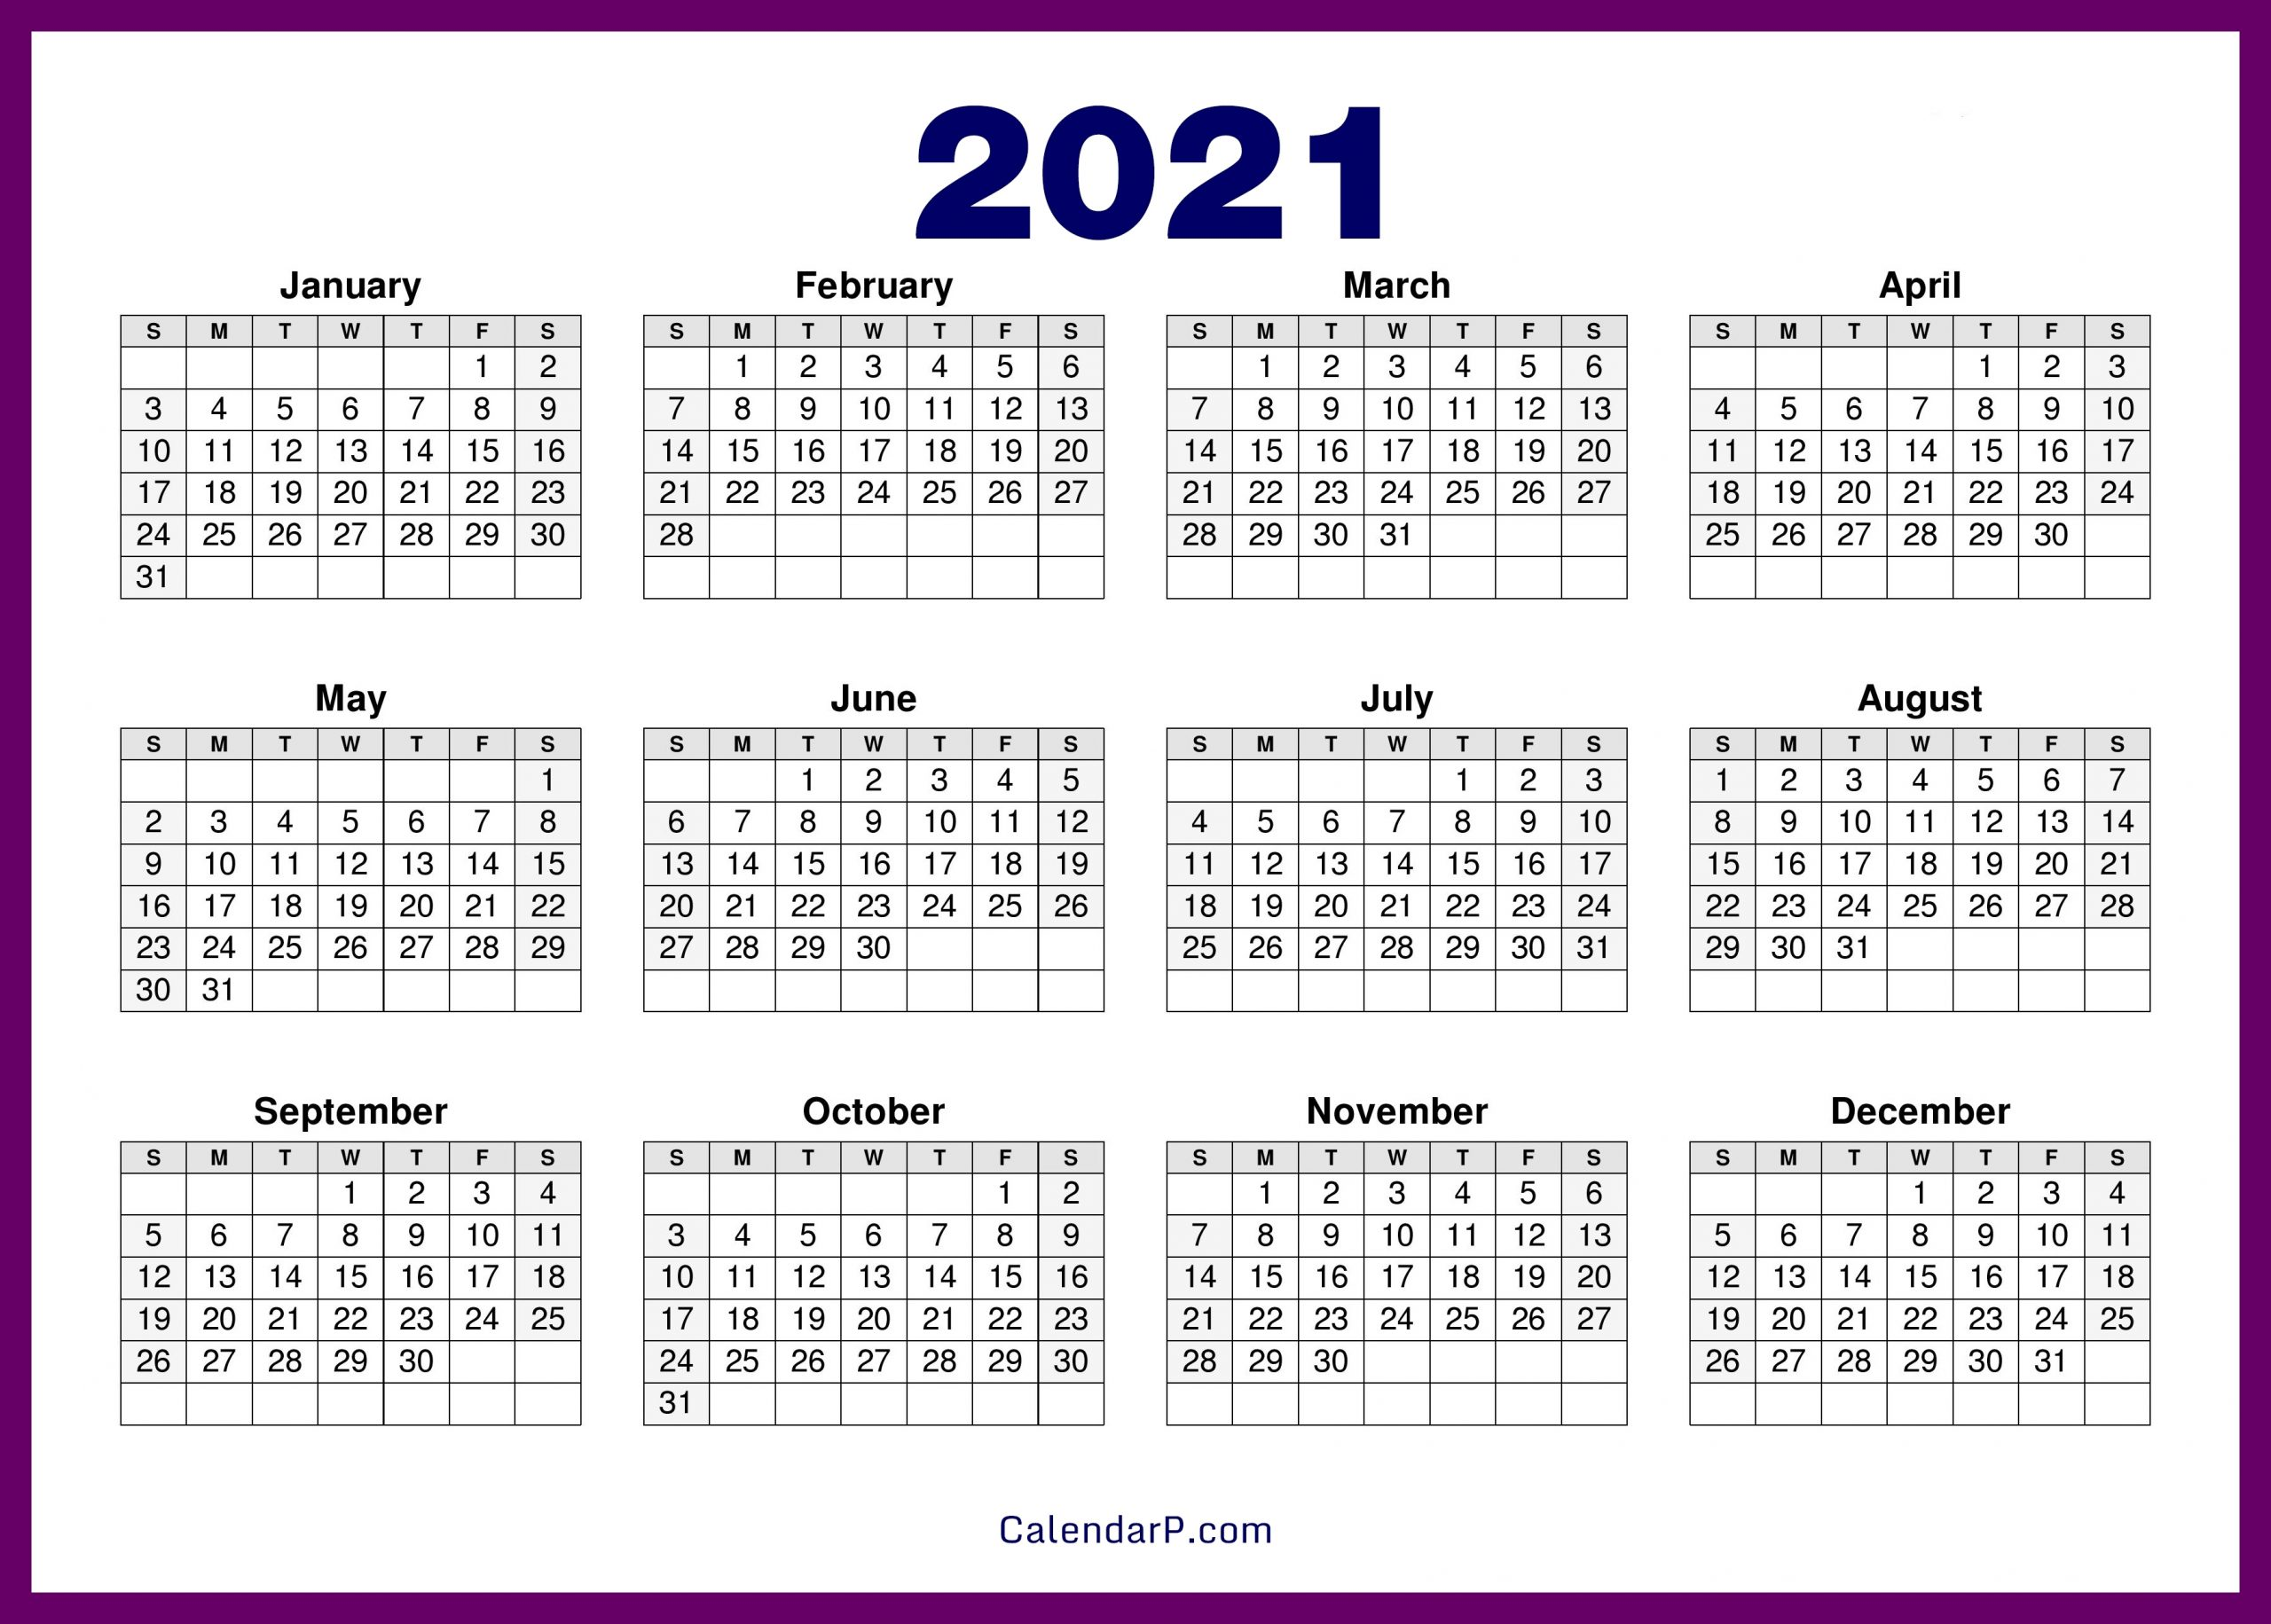 Printable 58 2021 Calendar - Free Free Printable 2021 Calendar With Holidays - Monthly And